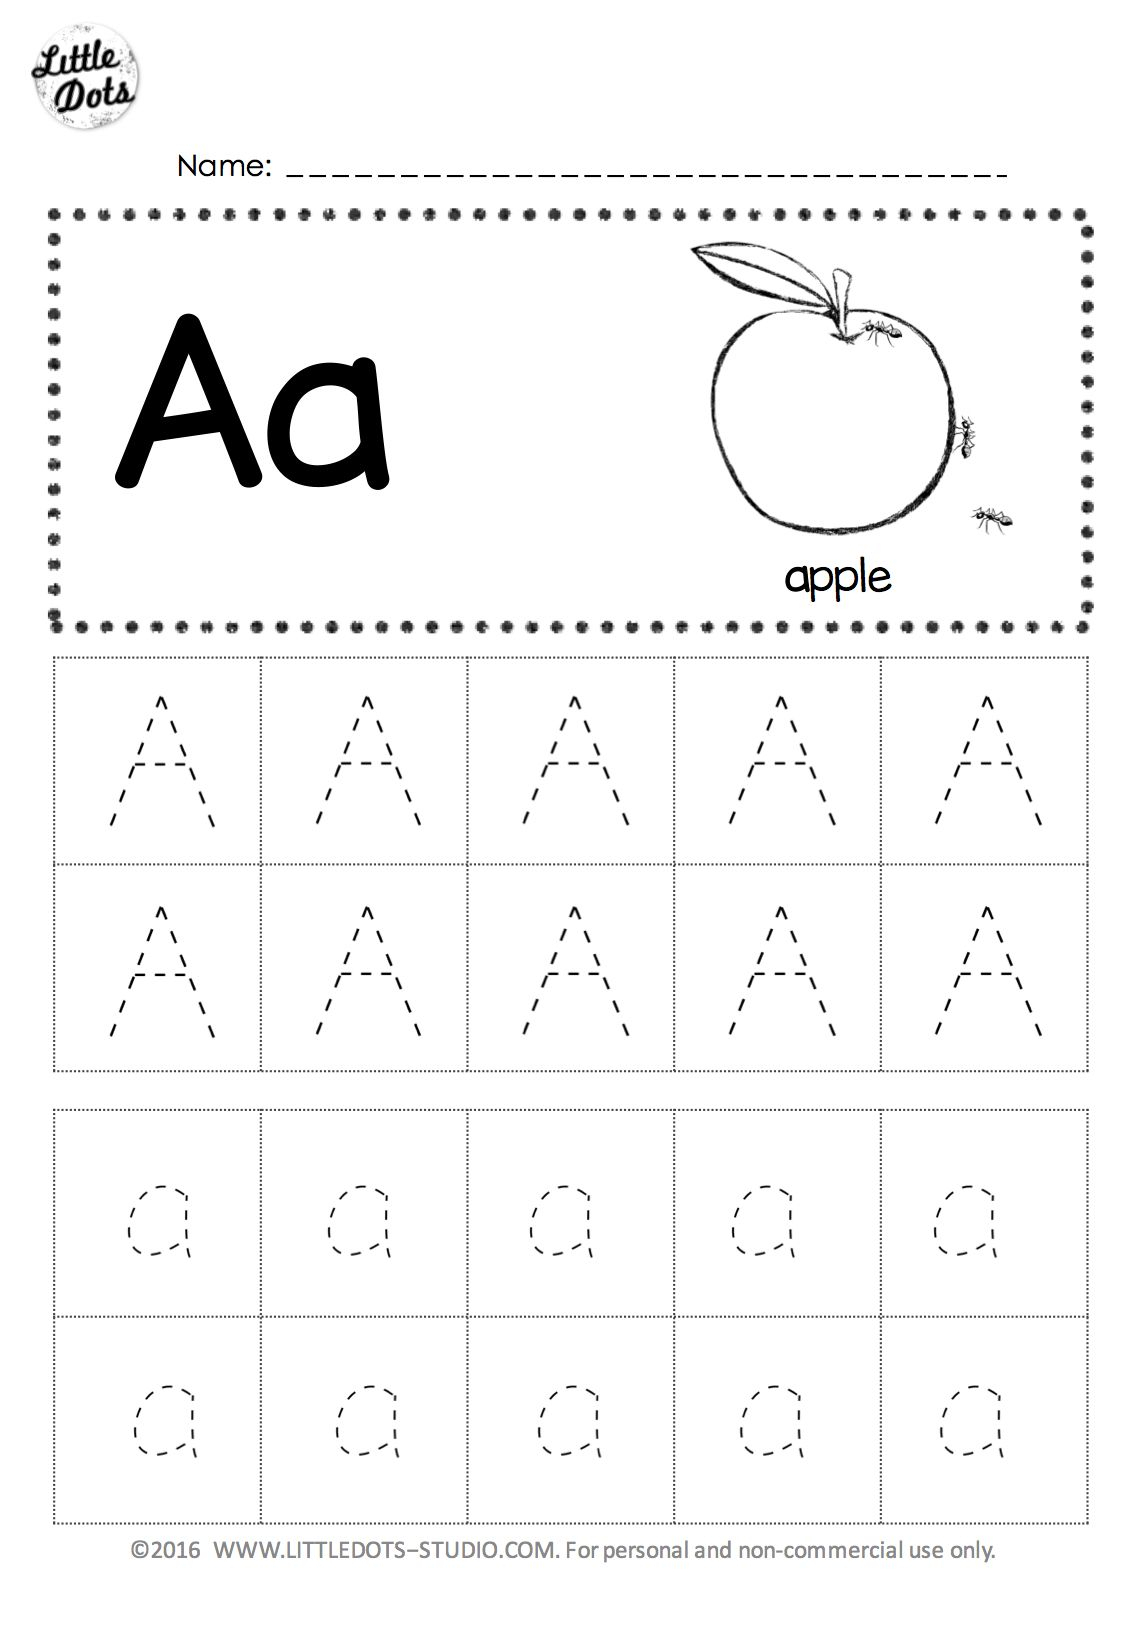 Free Letter A Tracing Worksheet intended for Dot Letters For Tracing Free